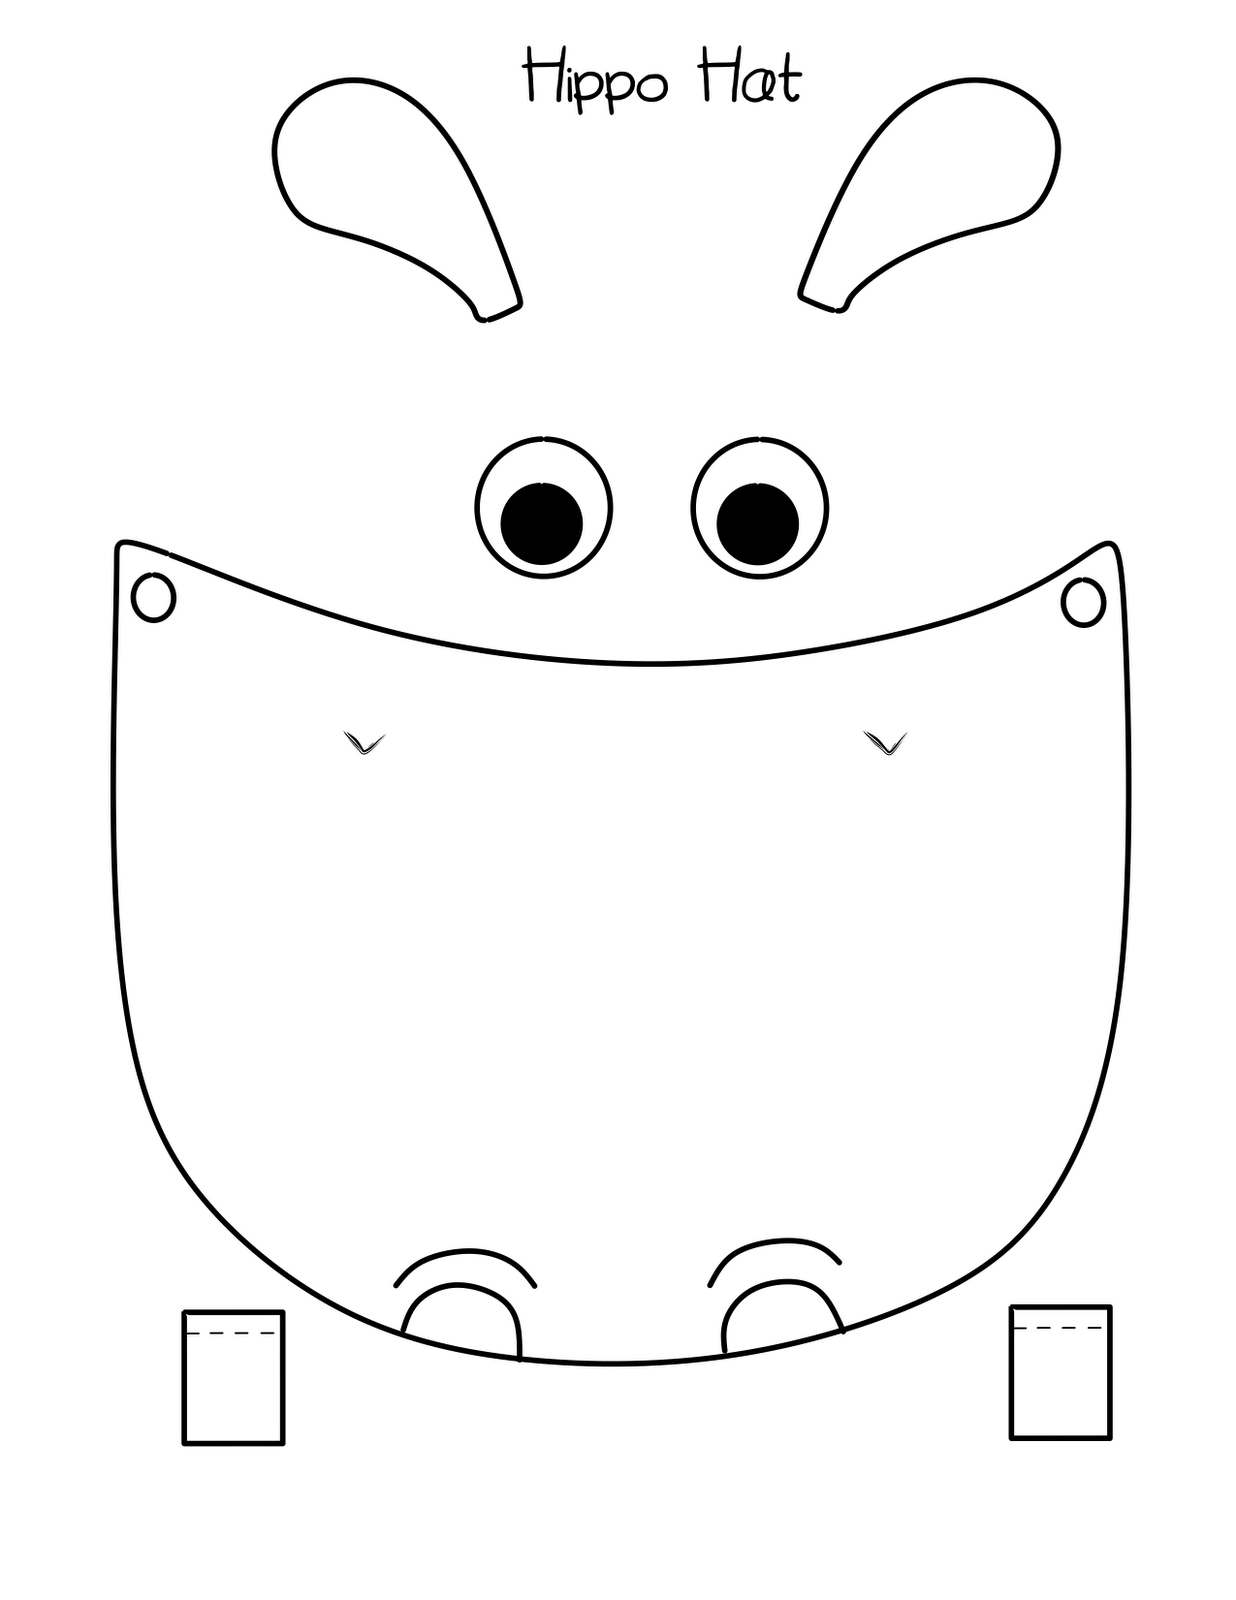 Bust Out Your Crayons: Hippo Hat Free Printable   Hippo Party Ideas - Free Printable Hippo Mask